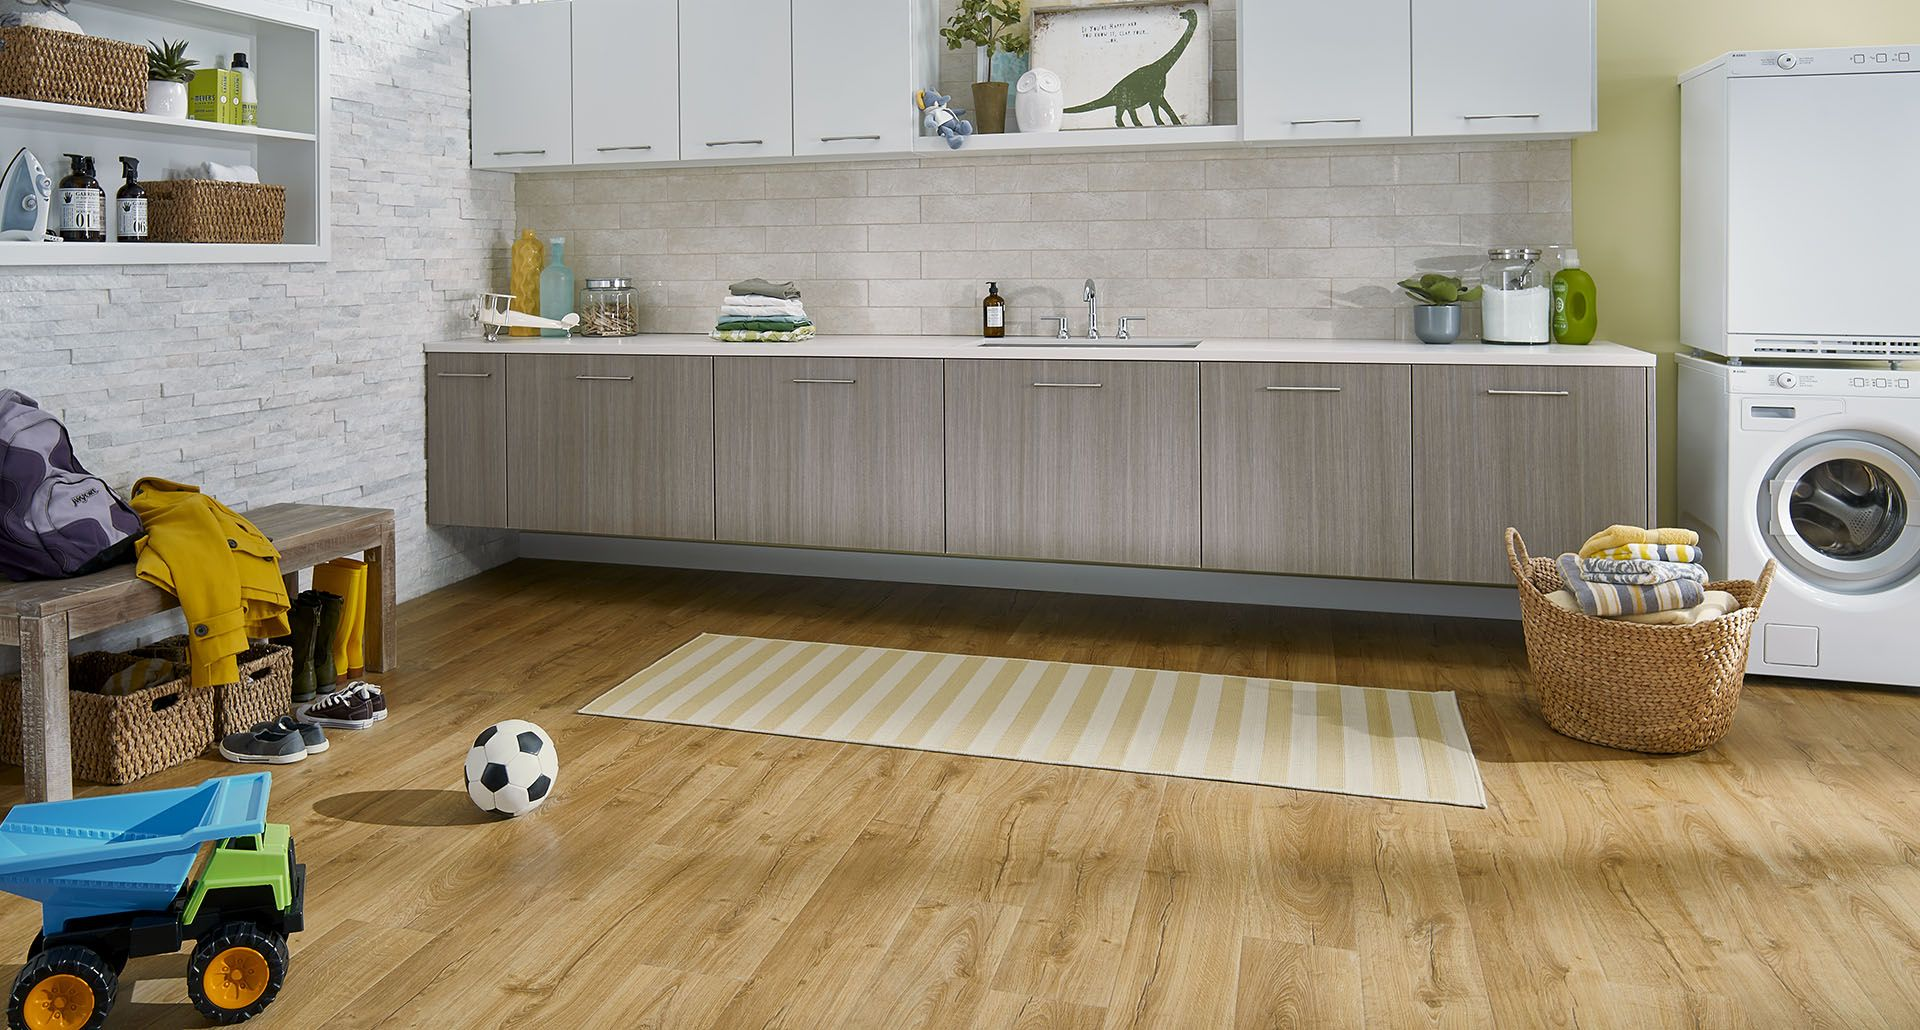 Vintage pewter oak pergo outlast laminate flooring pergo 174 flooring - Marigold Oak Natural Laminate Floor With Wear And Spill Protection Golden Oak Wood Finish Pergo